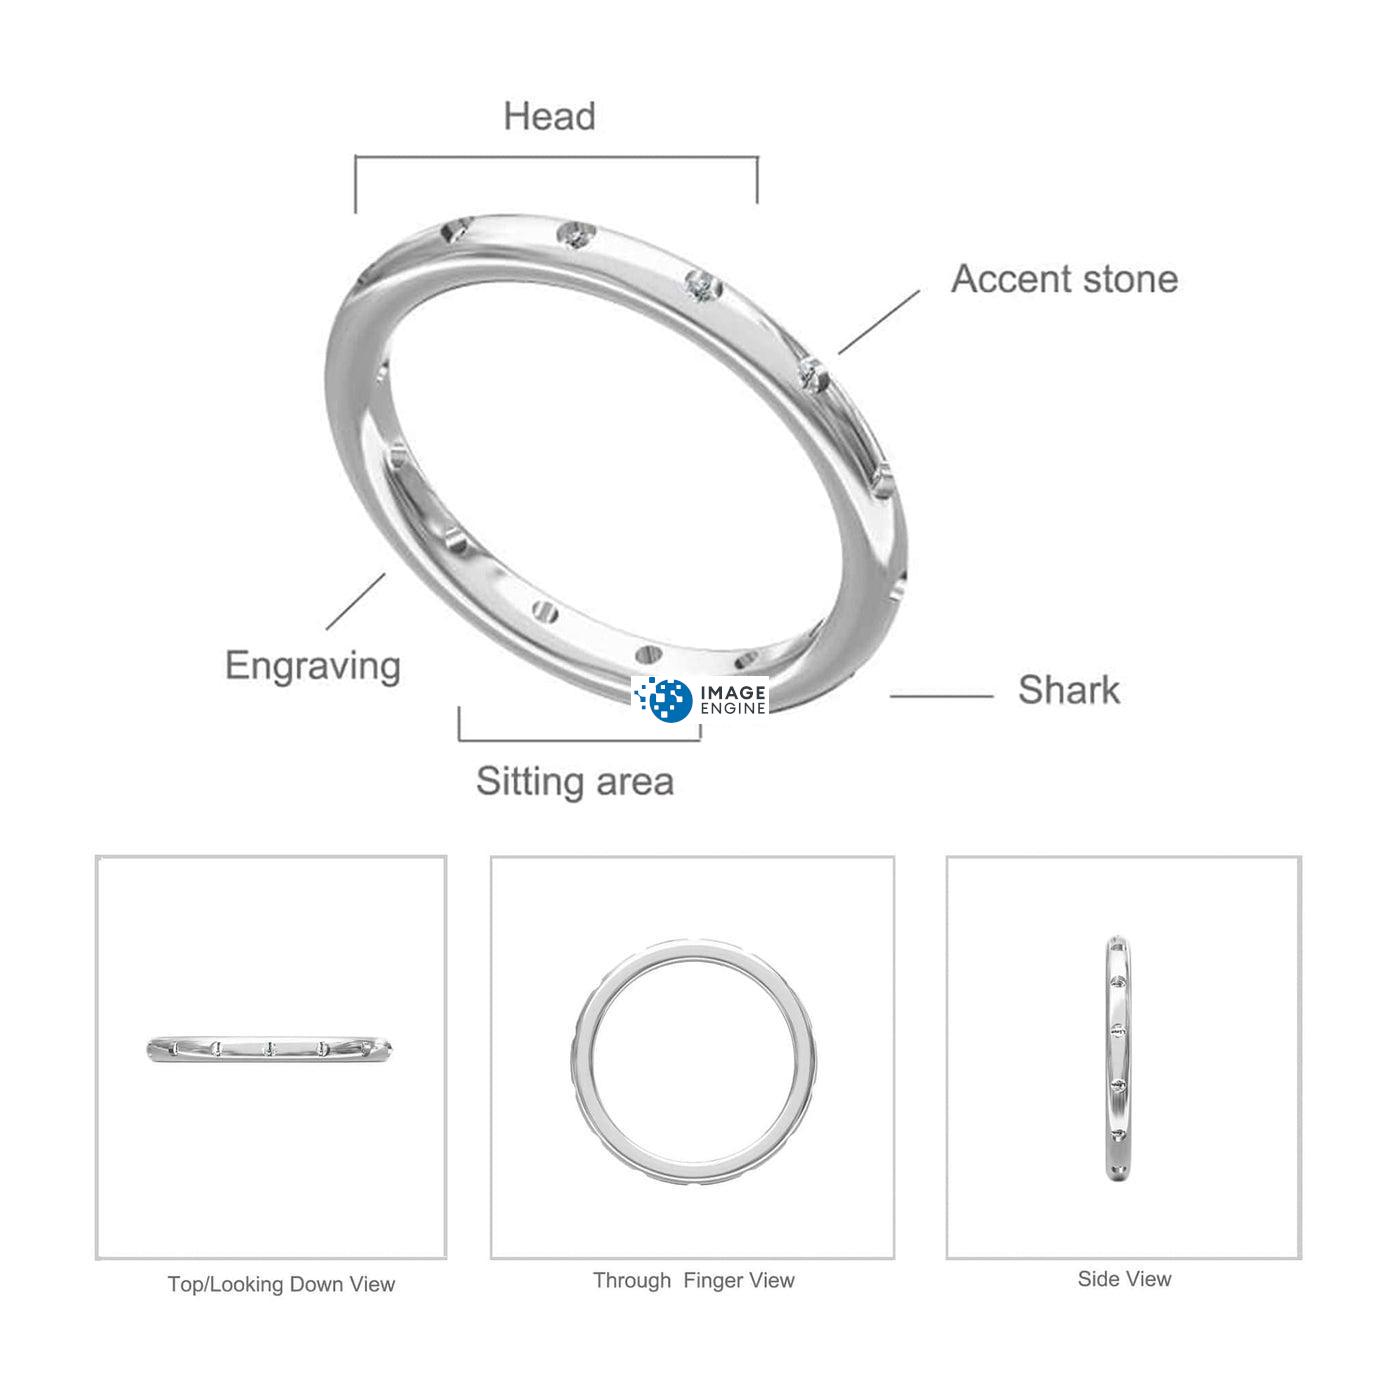 Droplet Ring - Parts - Diagram